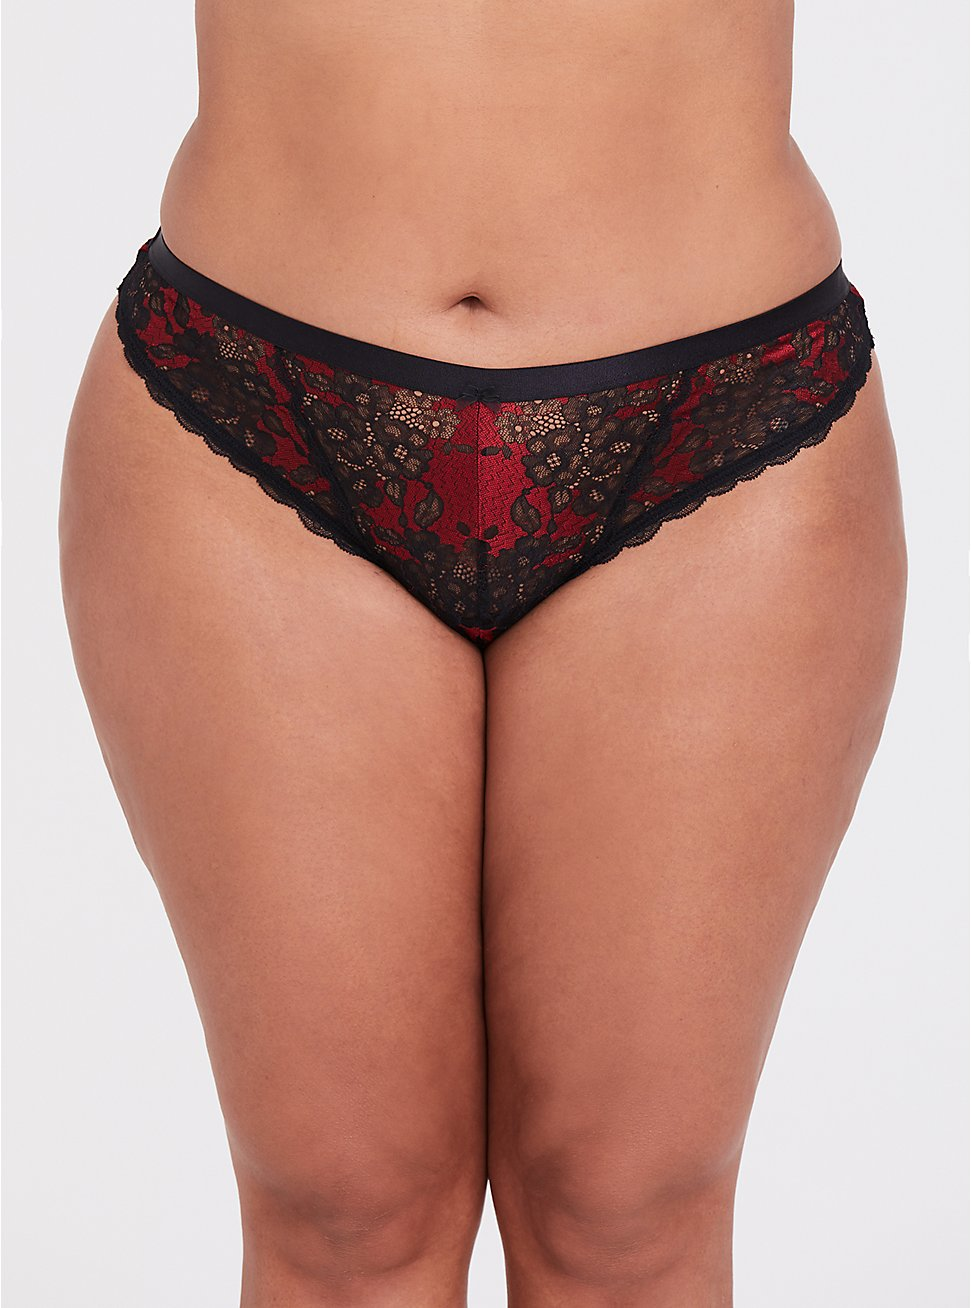 Red & Black Lace Thong Panty, JESTER RED, hi-res